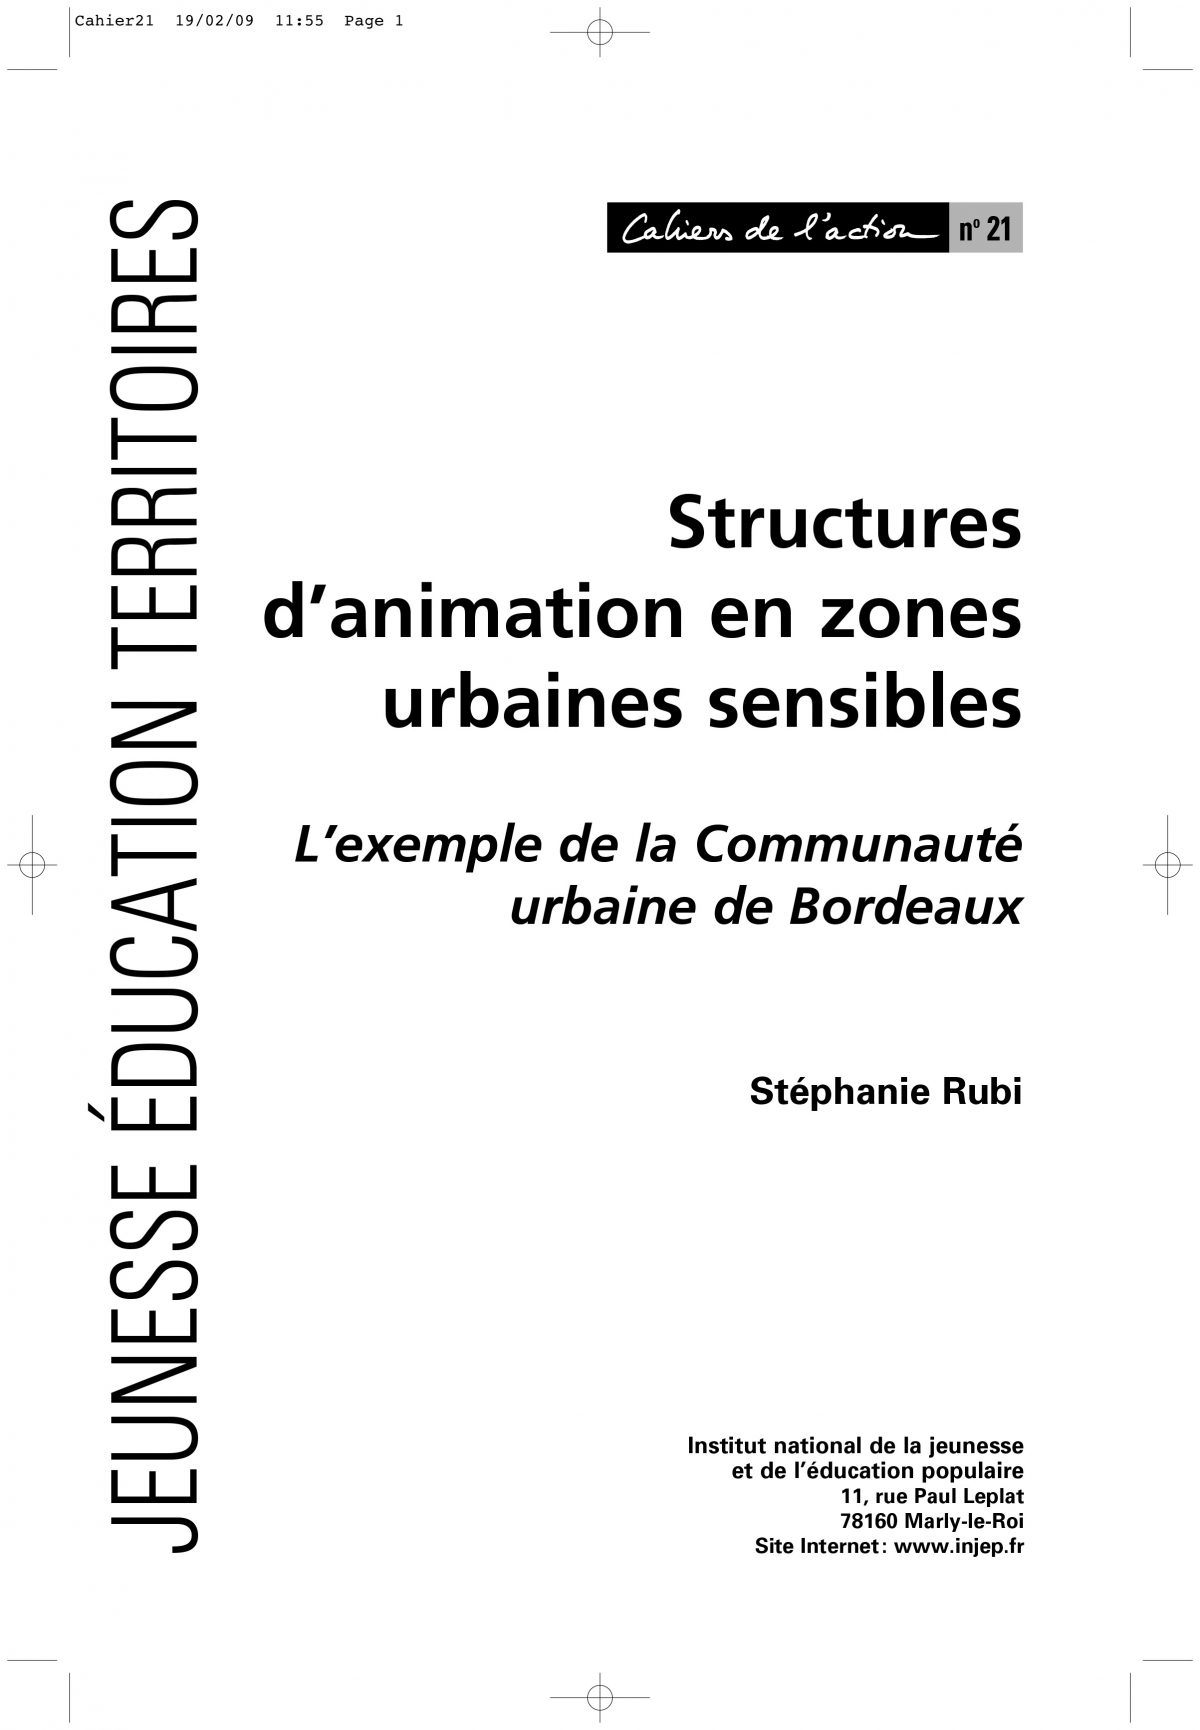 Structures d'animation en zones urbaines sensibles